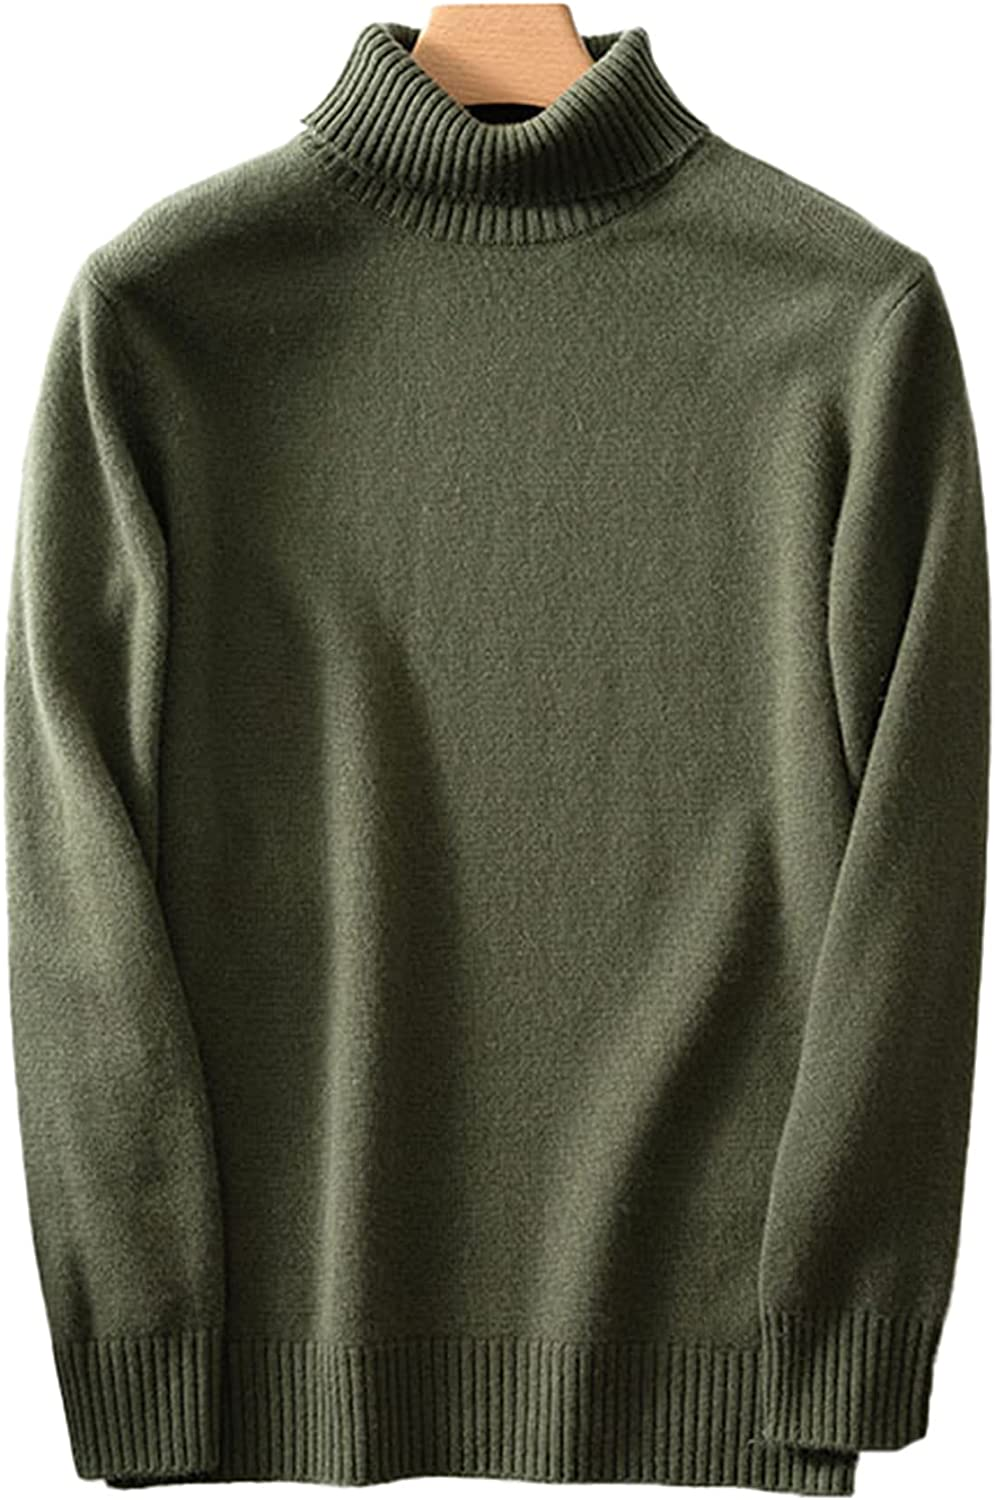 Men's Solid Color Turtleneck Cashmere Sweater Thicken Mid-Length Casual Pullover Outwear Tops Daily